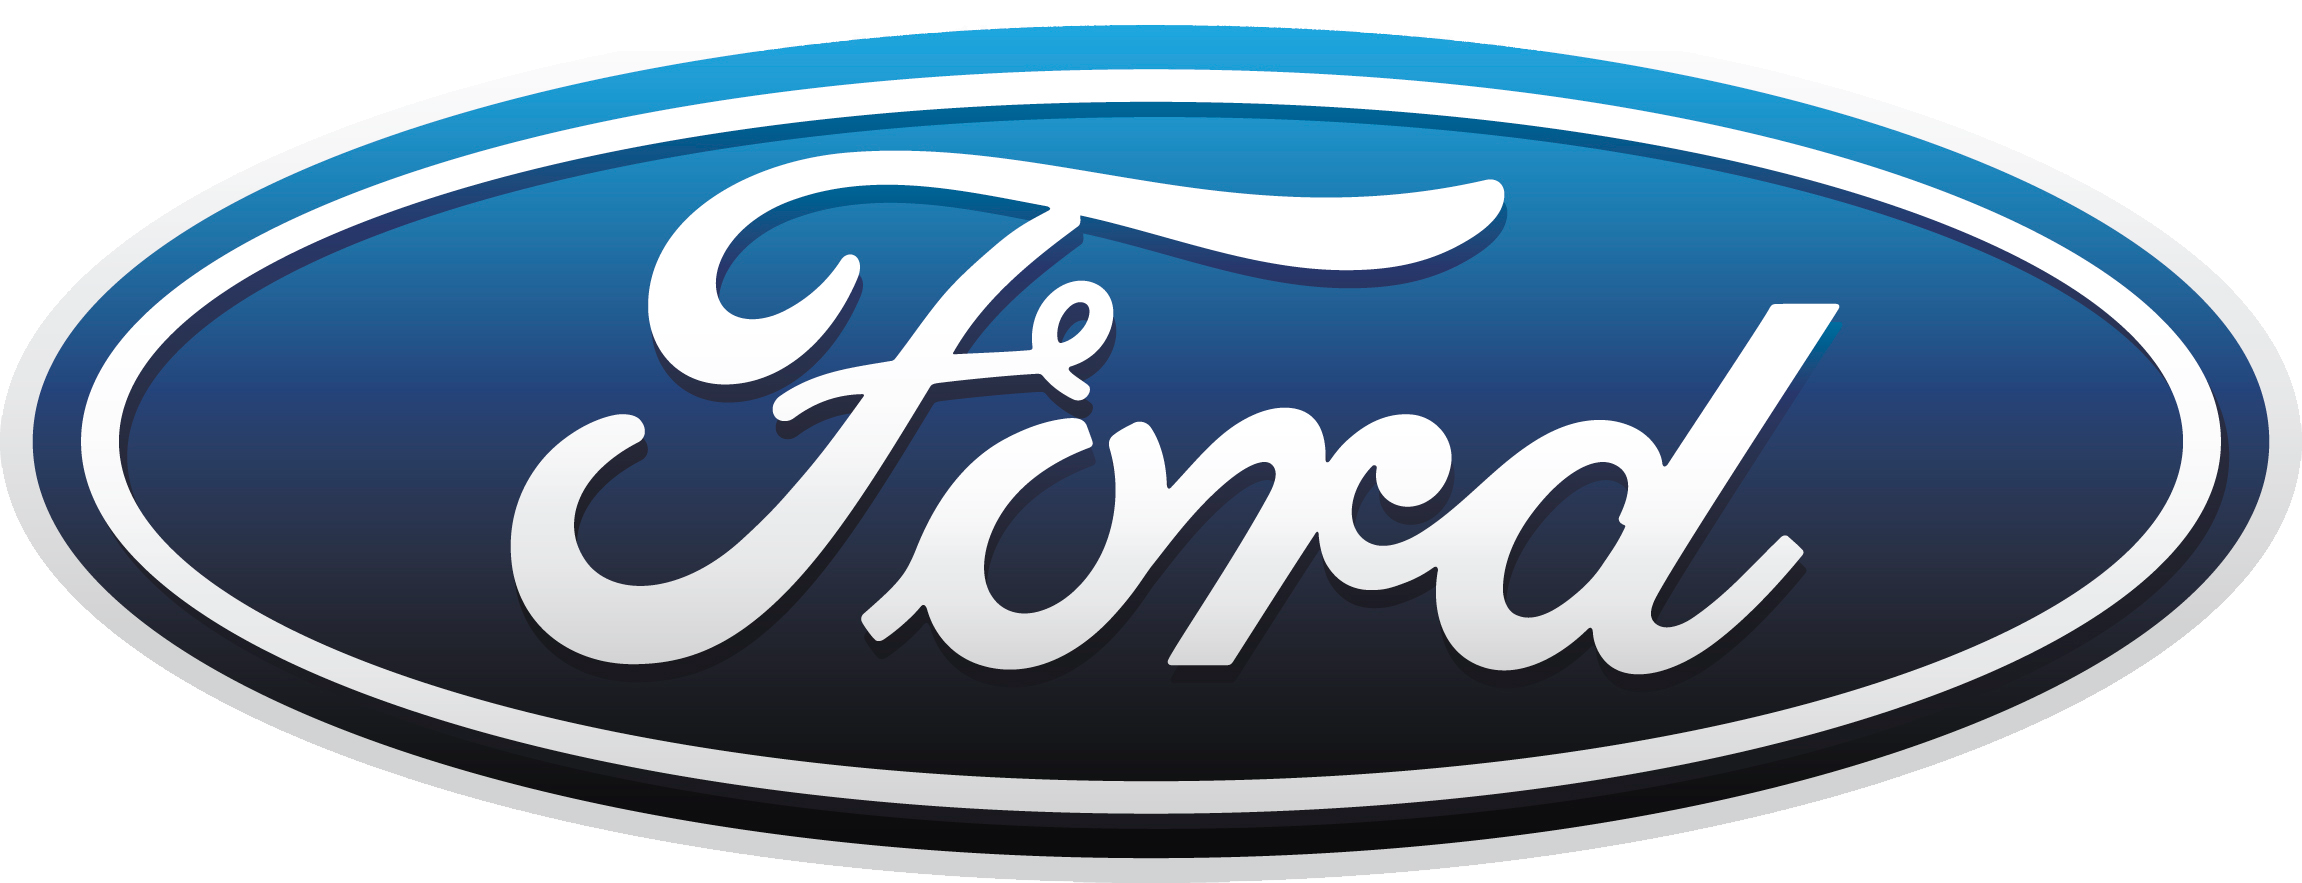 Ford Car Logo Png Brand Image - Car, Transparent background PNG HD thumbnail